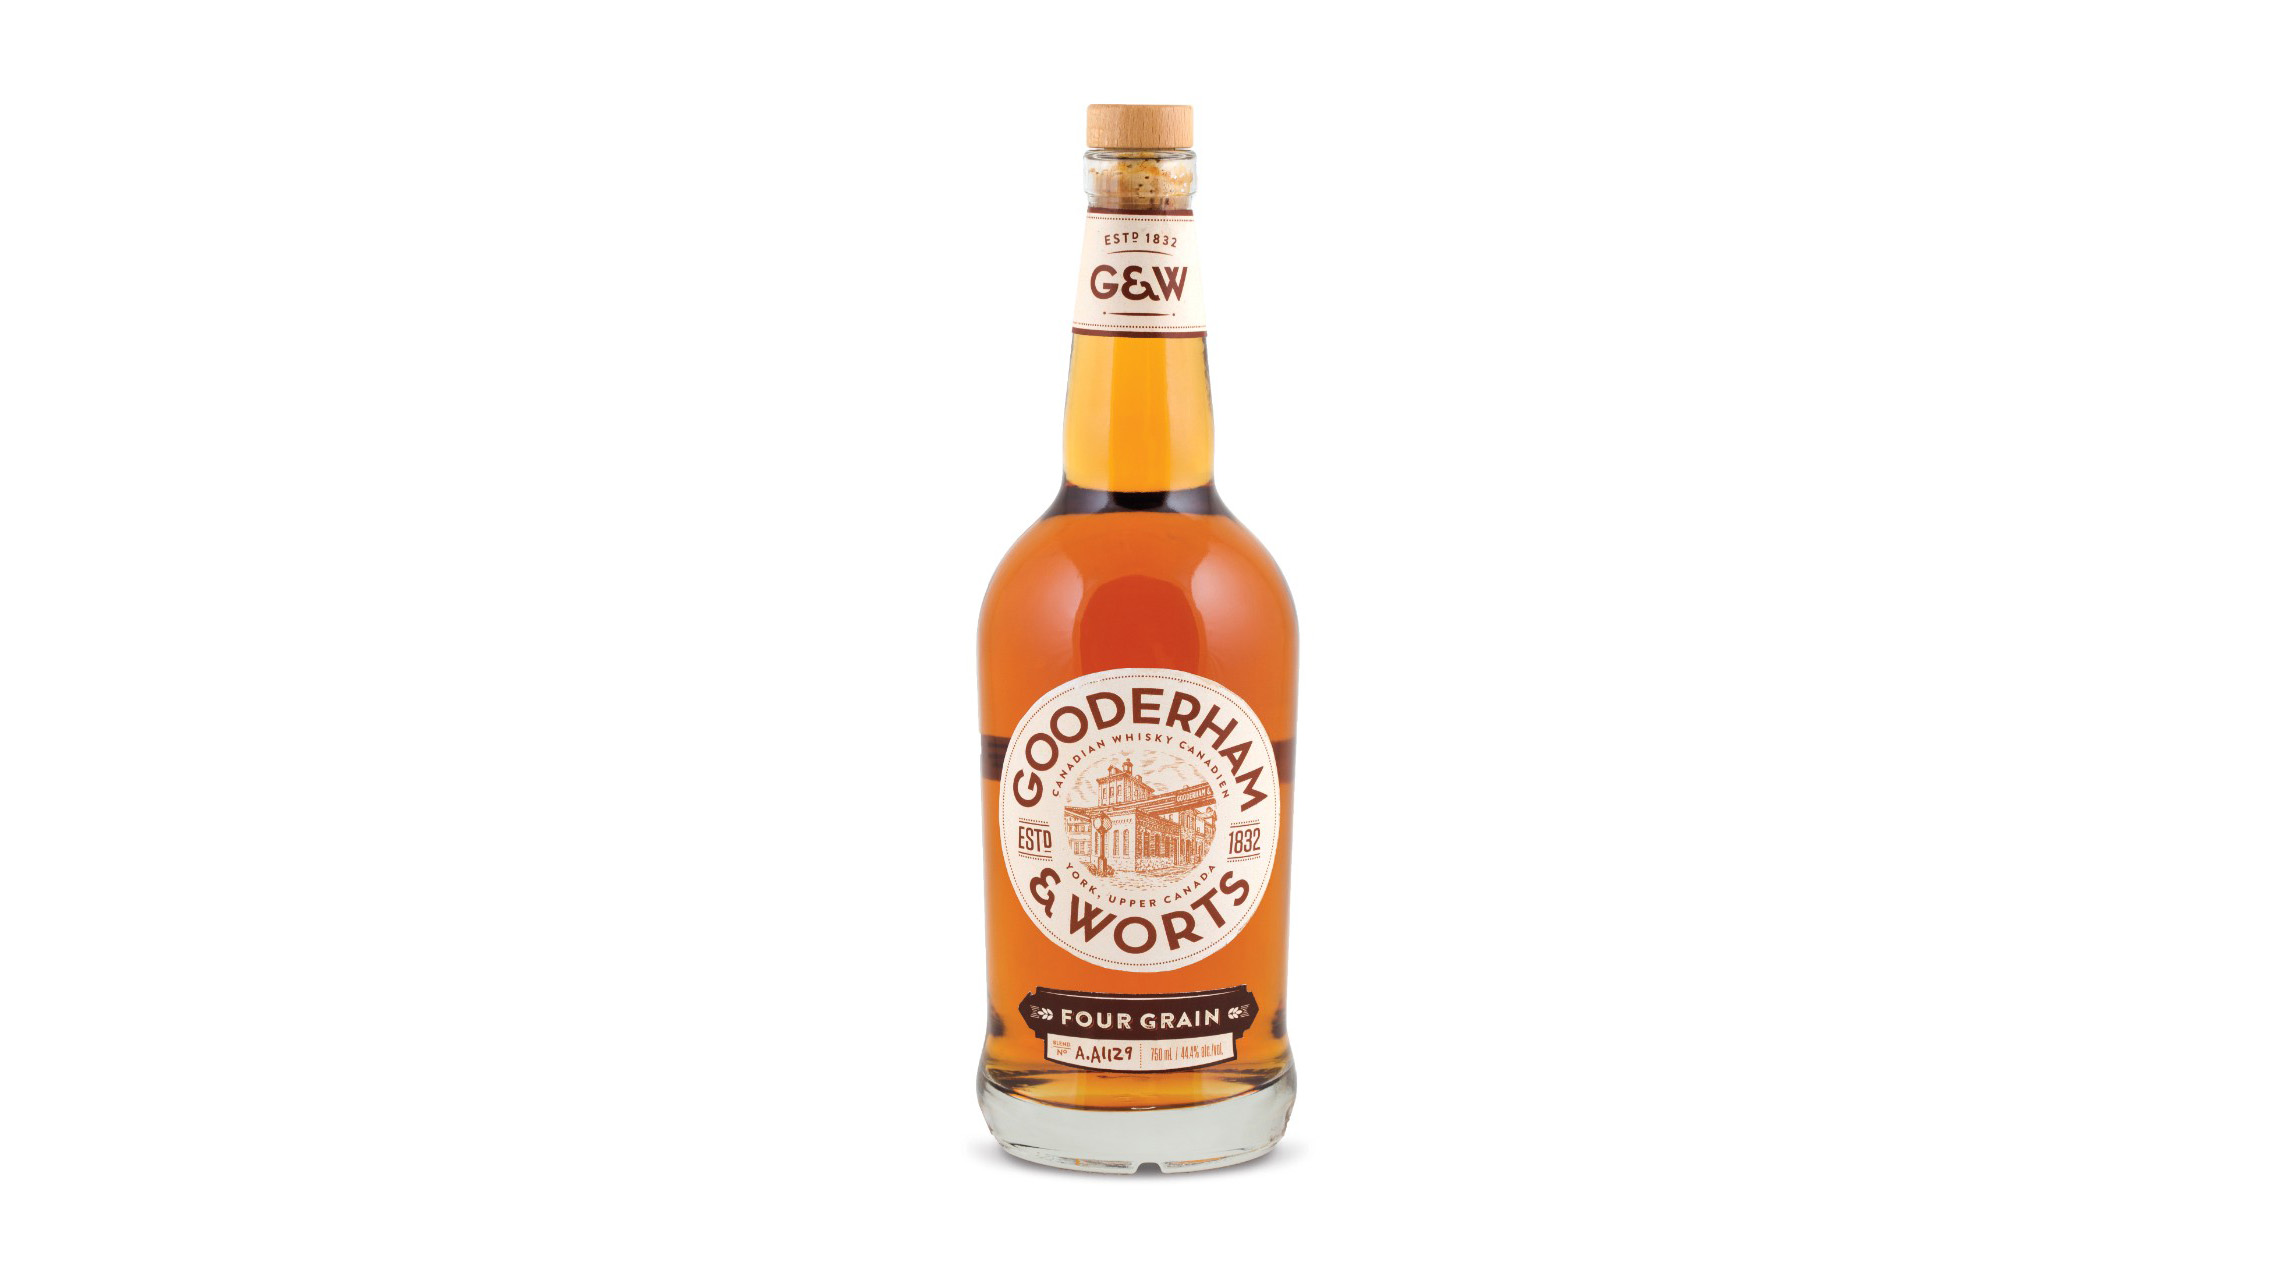 gooderham-and-worts-whisky